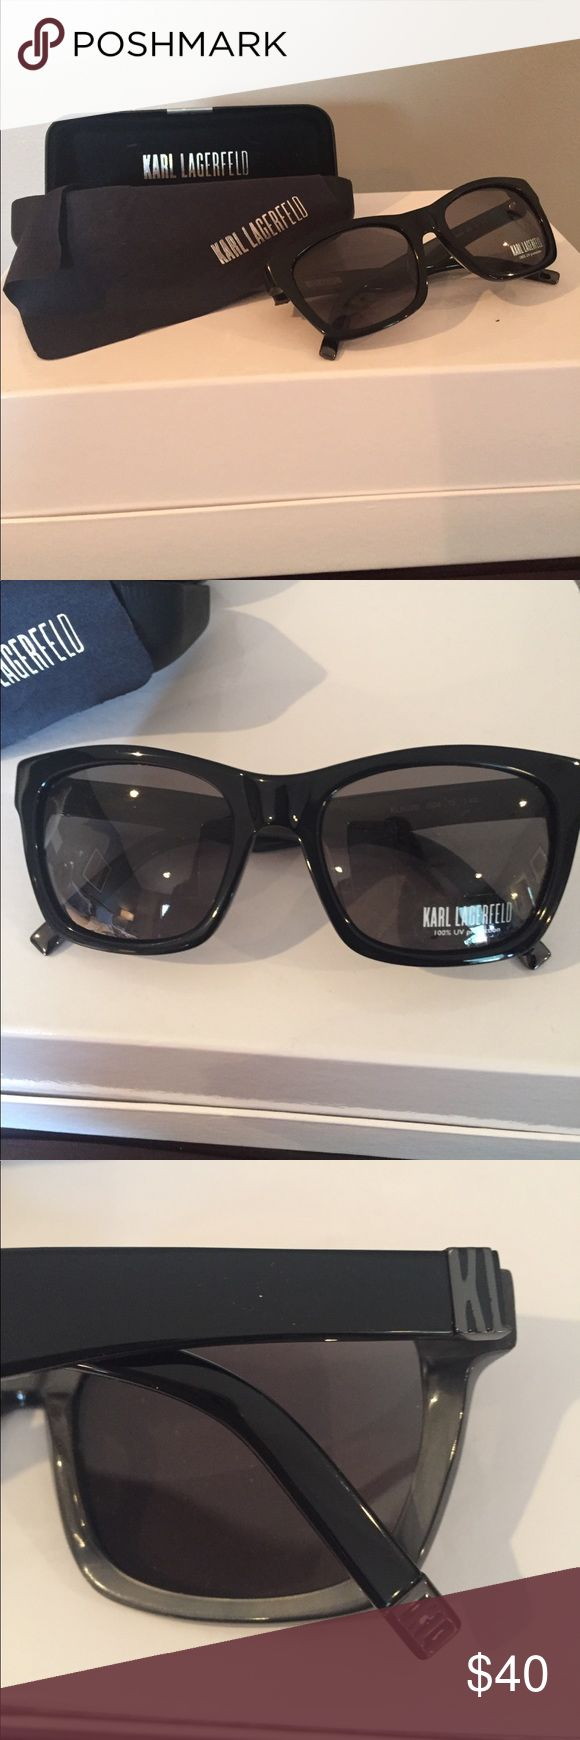 Karl Lagerfeld Sunglasses NWT Karl Lagerfeld Sunglasses NWT No Issues Never Been Worn purchased but just not wearing. Karl Lagerfeld Accessories Sunglasses